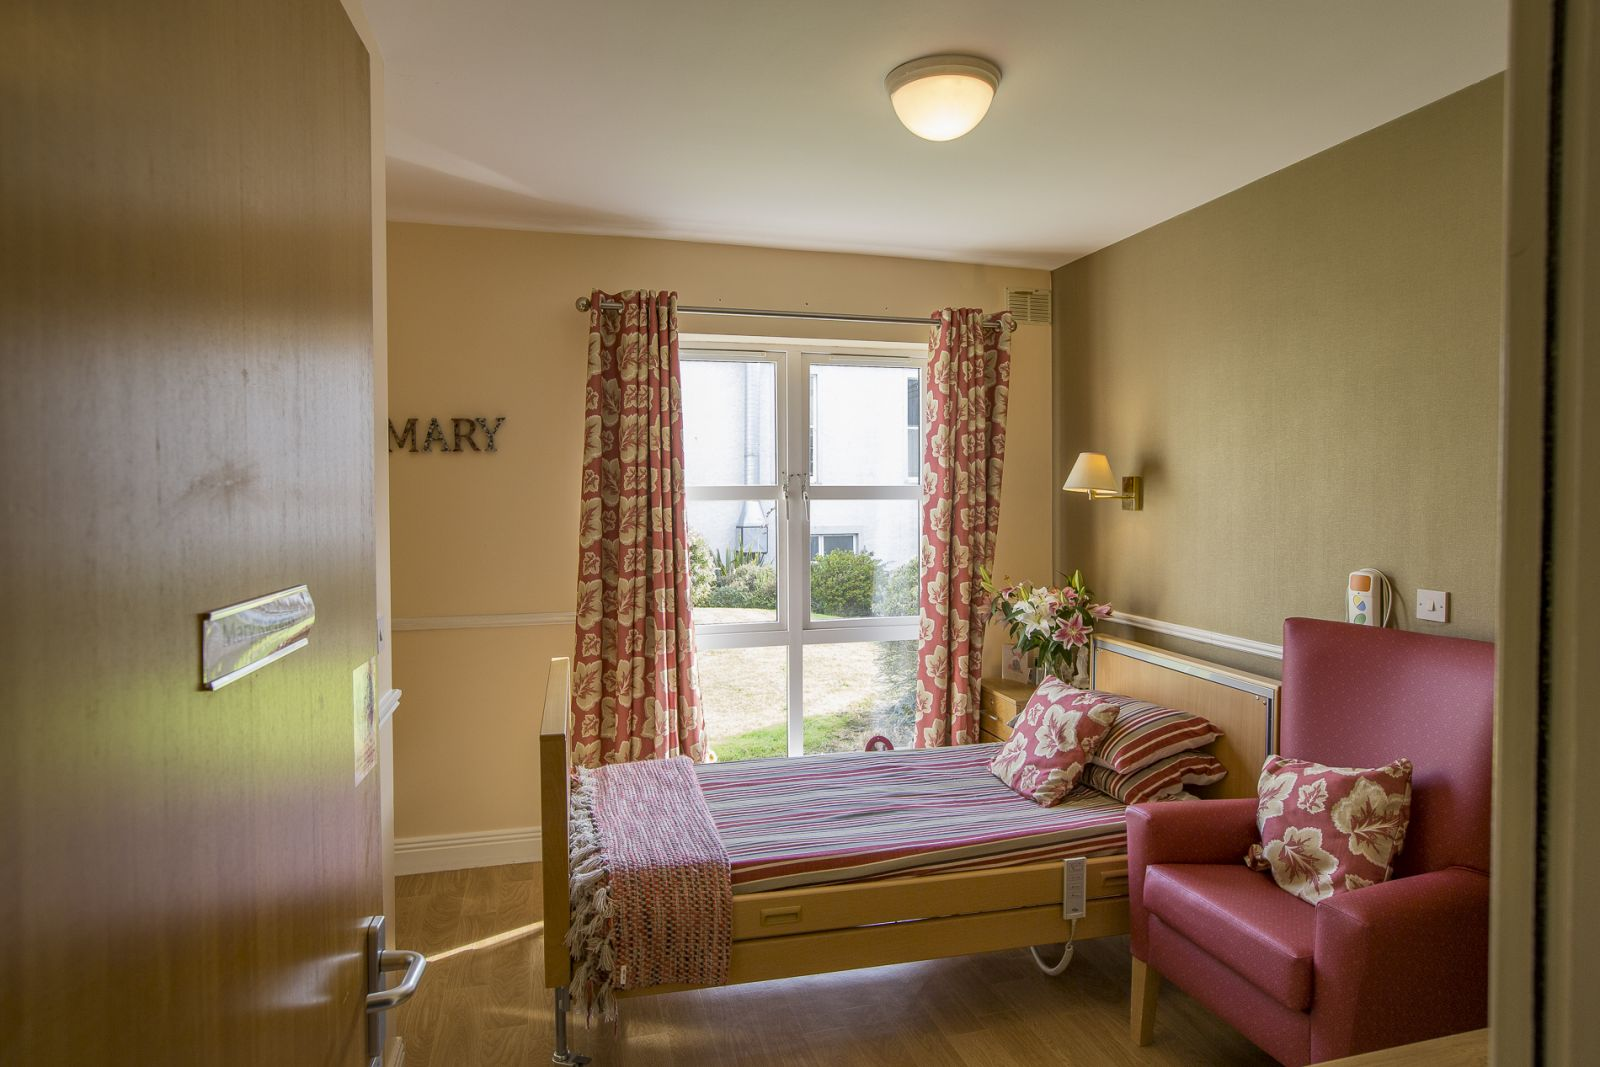 one of the care home bedroom